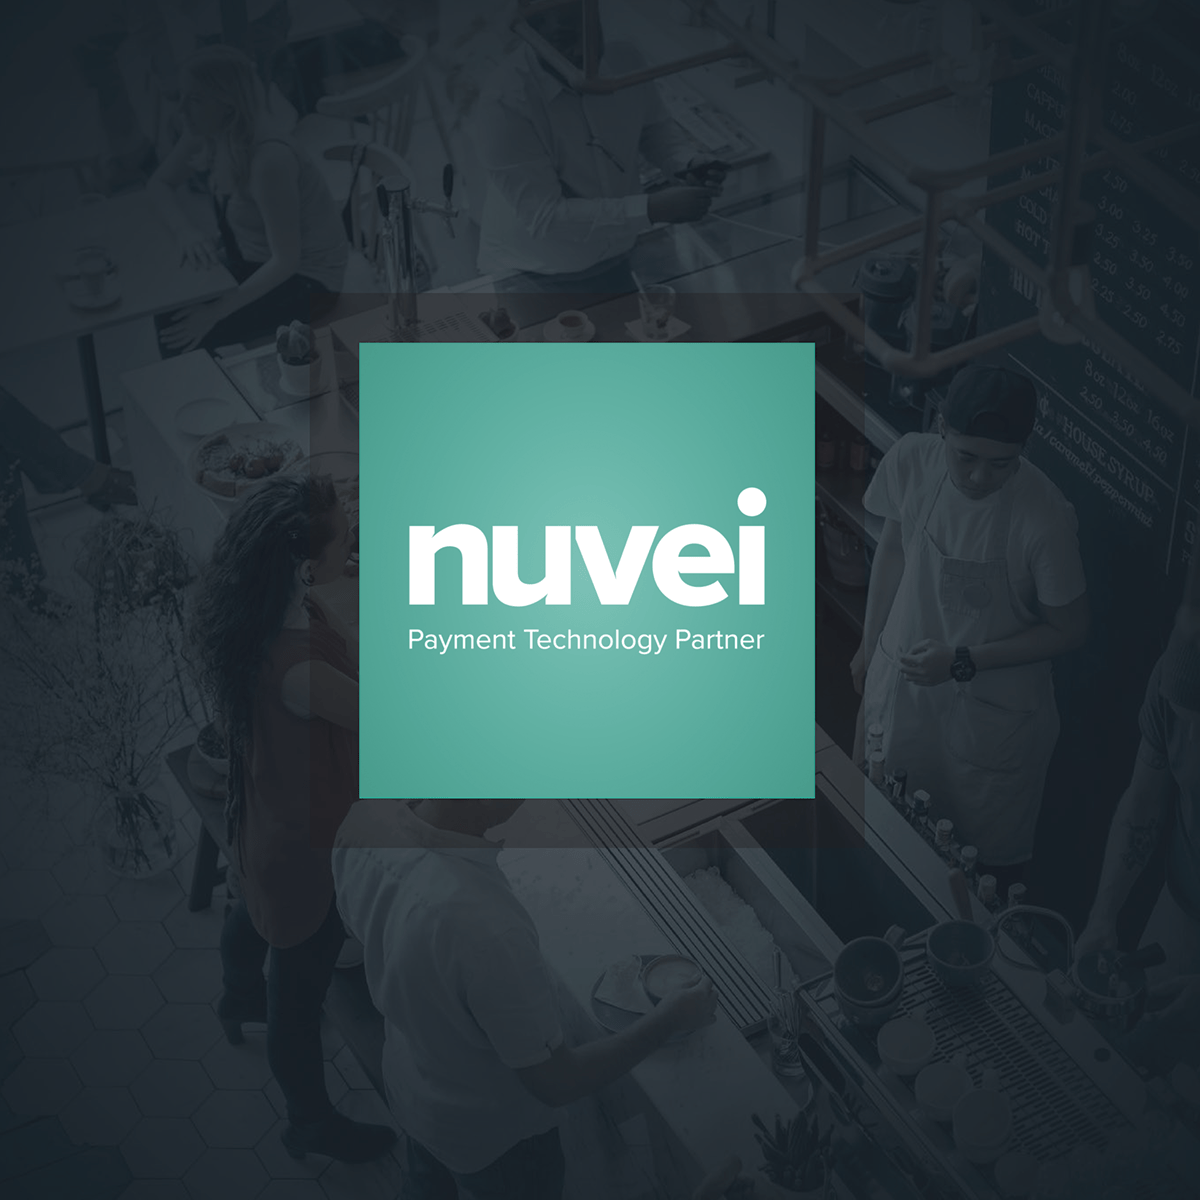 Nuvei Links Up With Wplay To Power LatAm Payment Activities